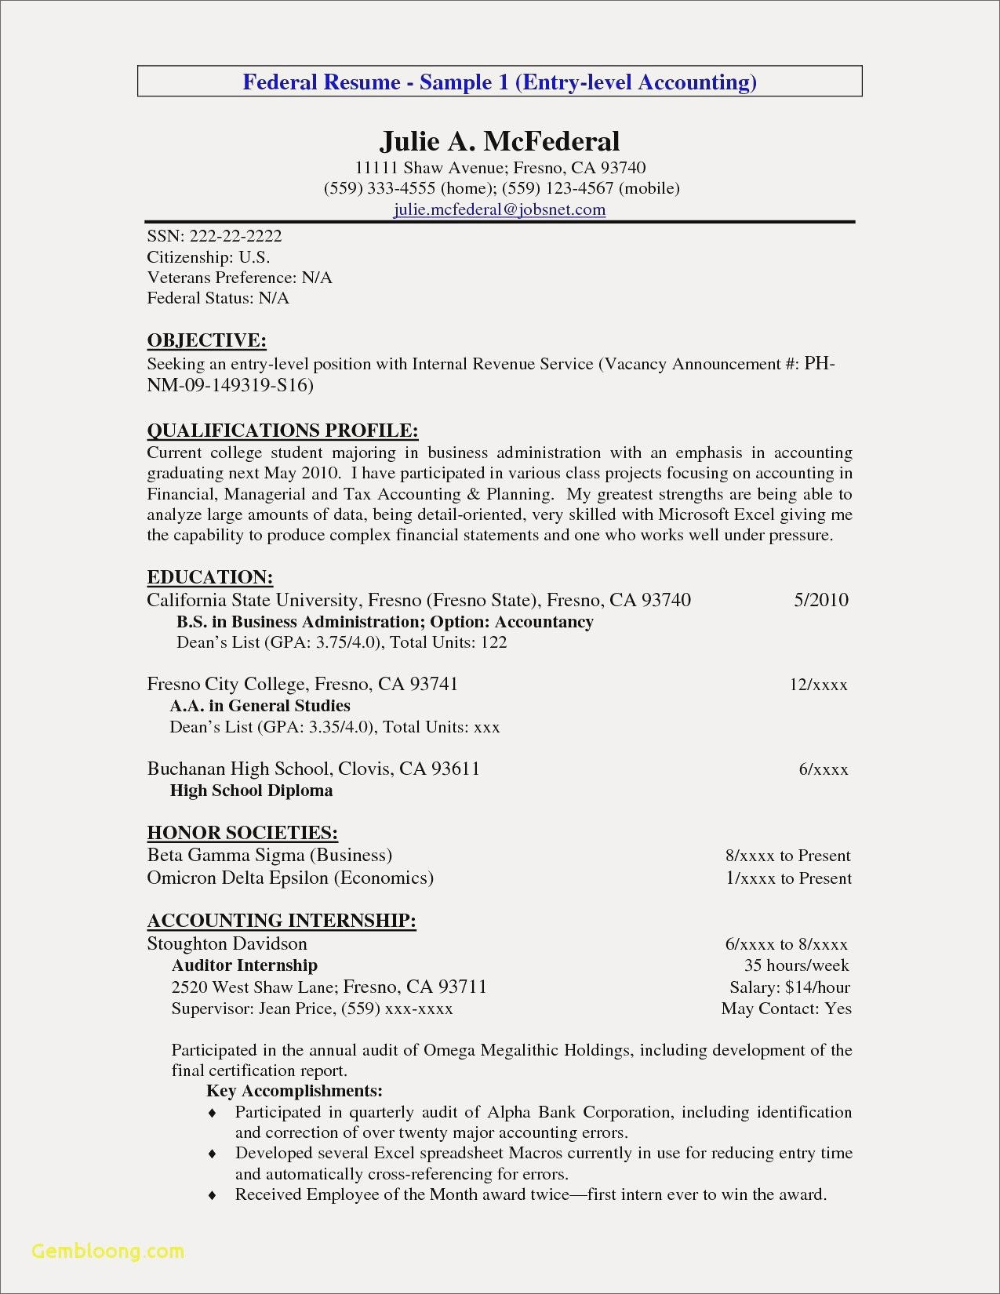 Book Report Template College Level Glendale Community With Regard To Col Resume Objective Statement Resume Objective Statement Examples Resume Objective Sample